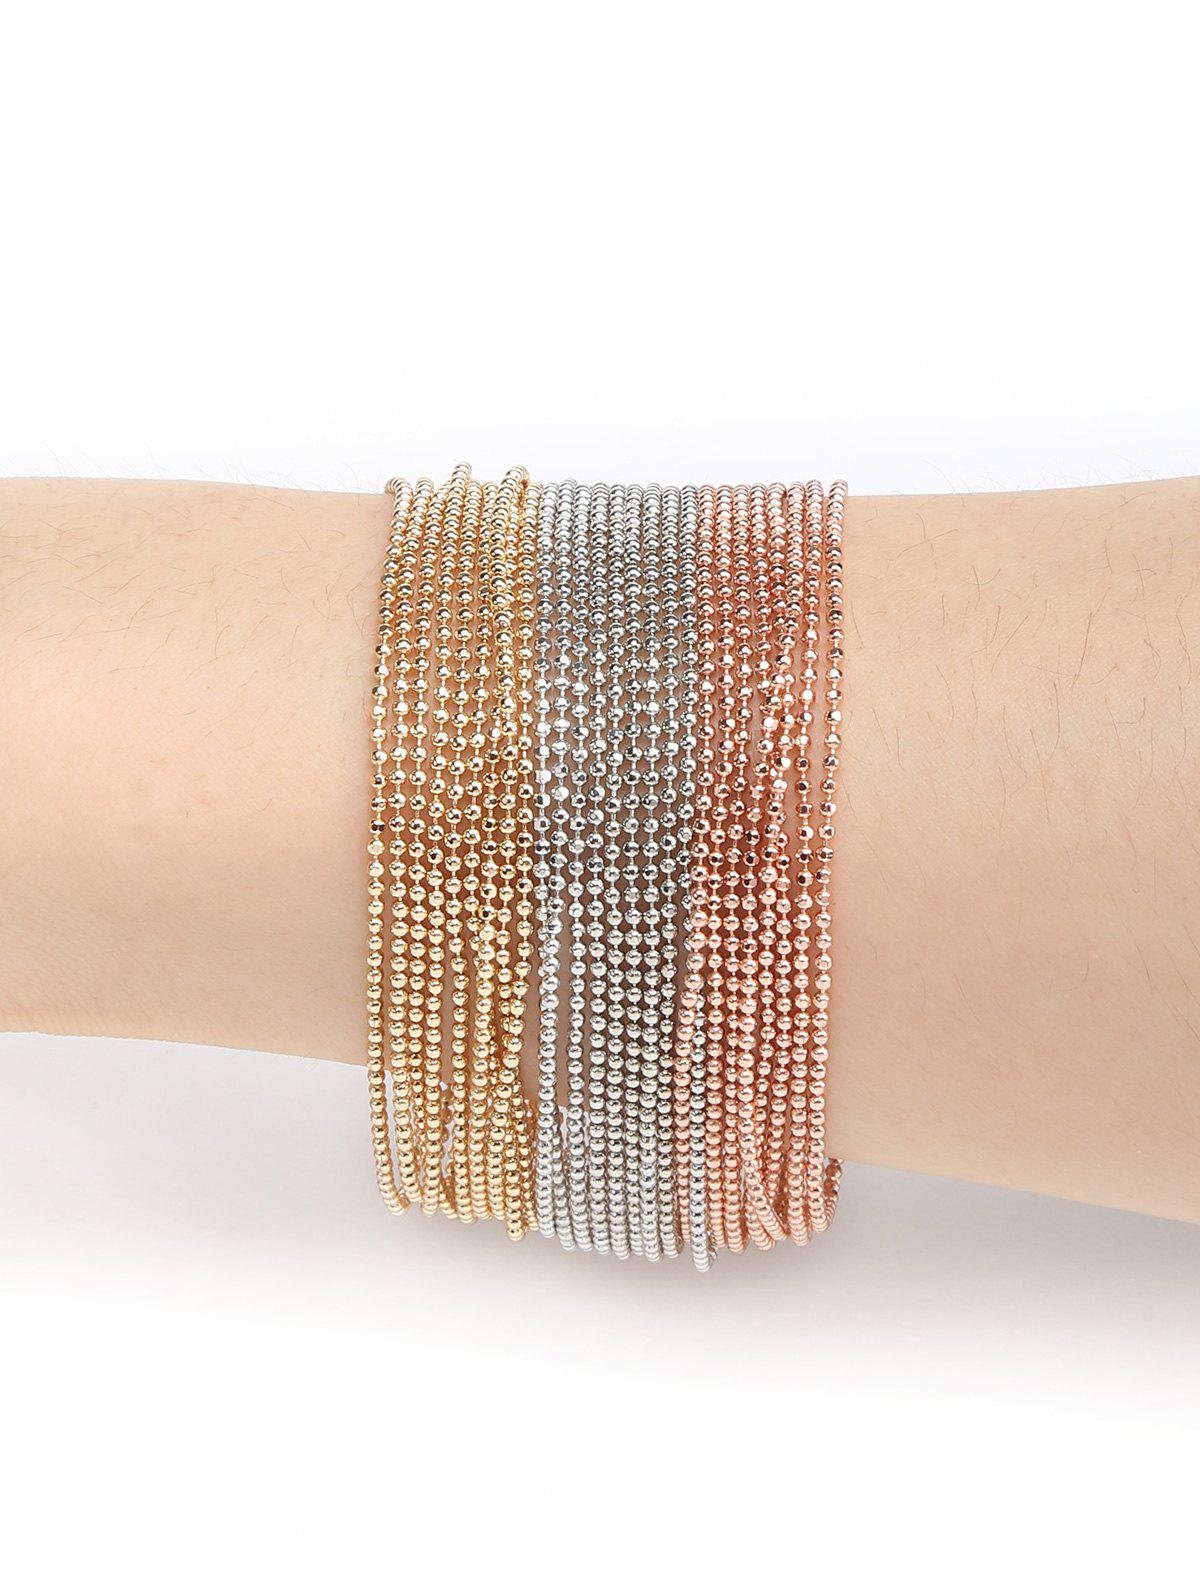 Sale Unique Multilayers Beads Metal Bracelet